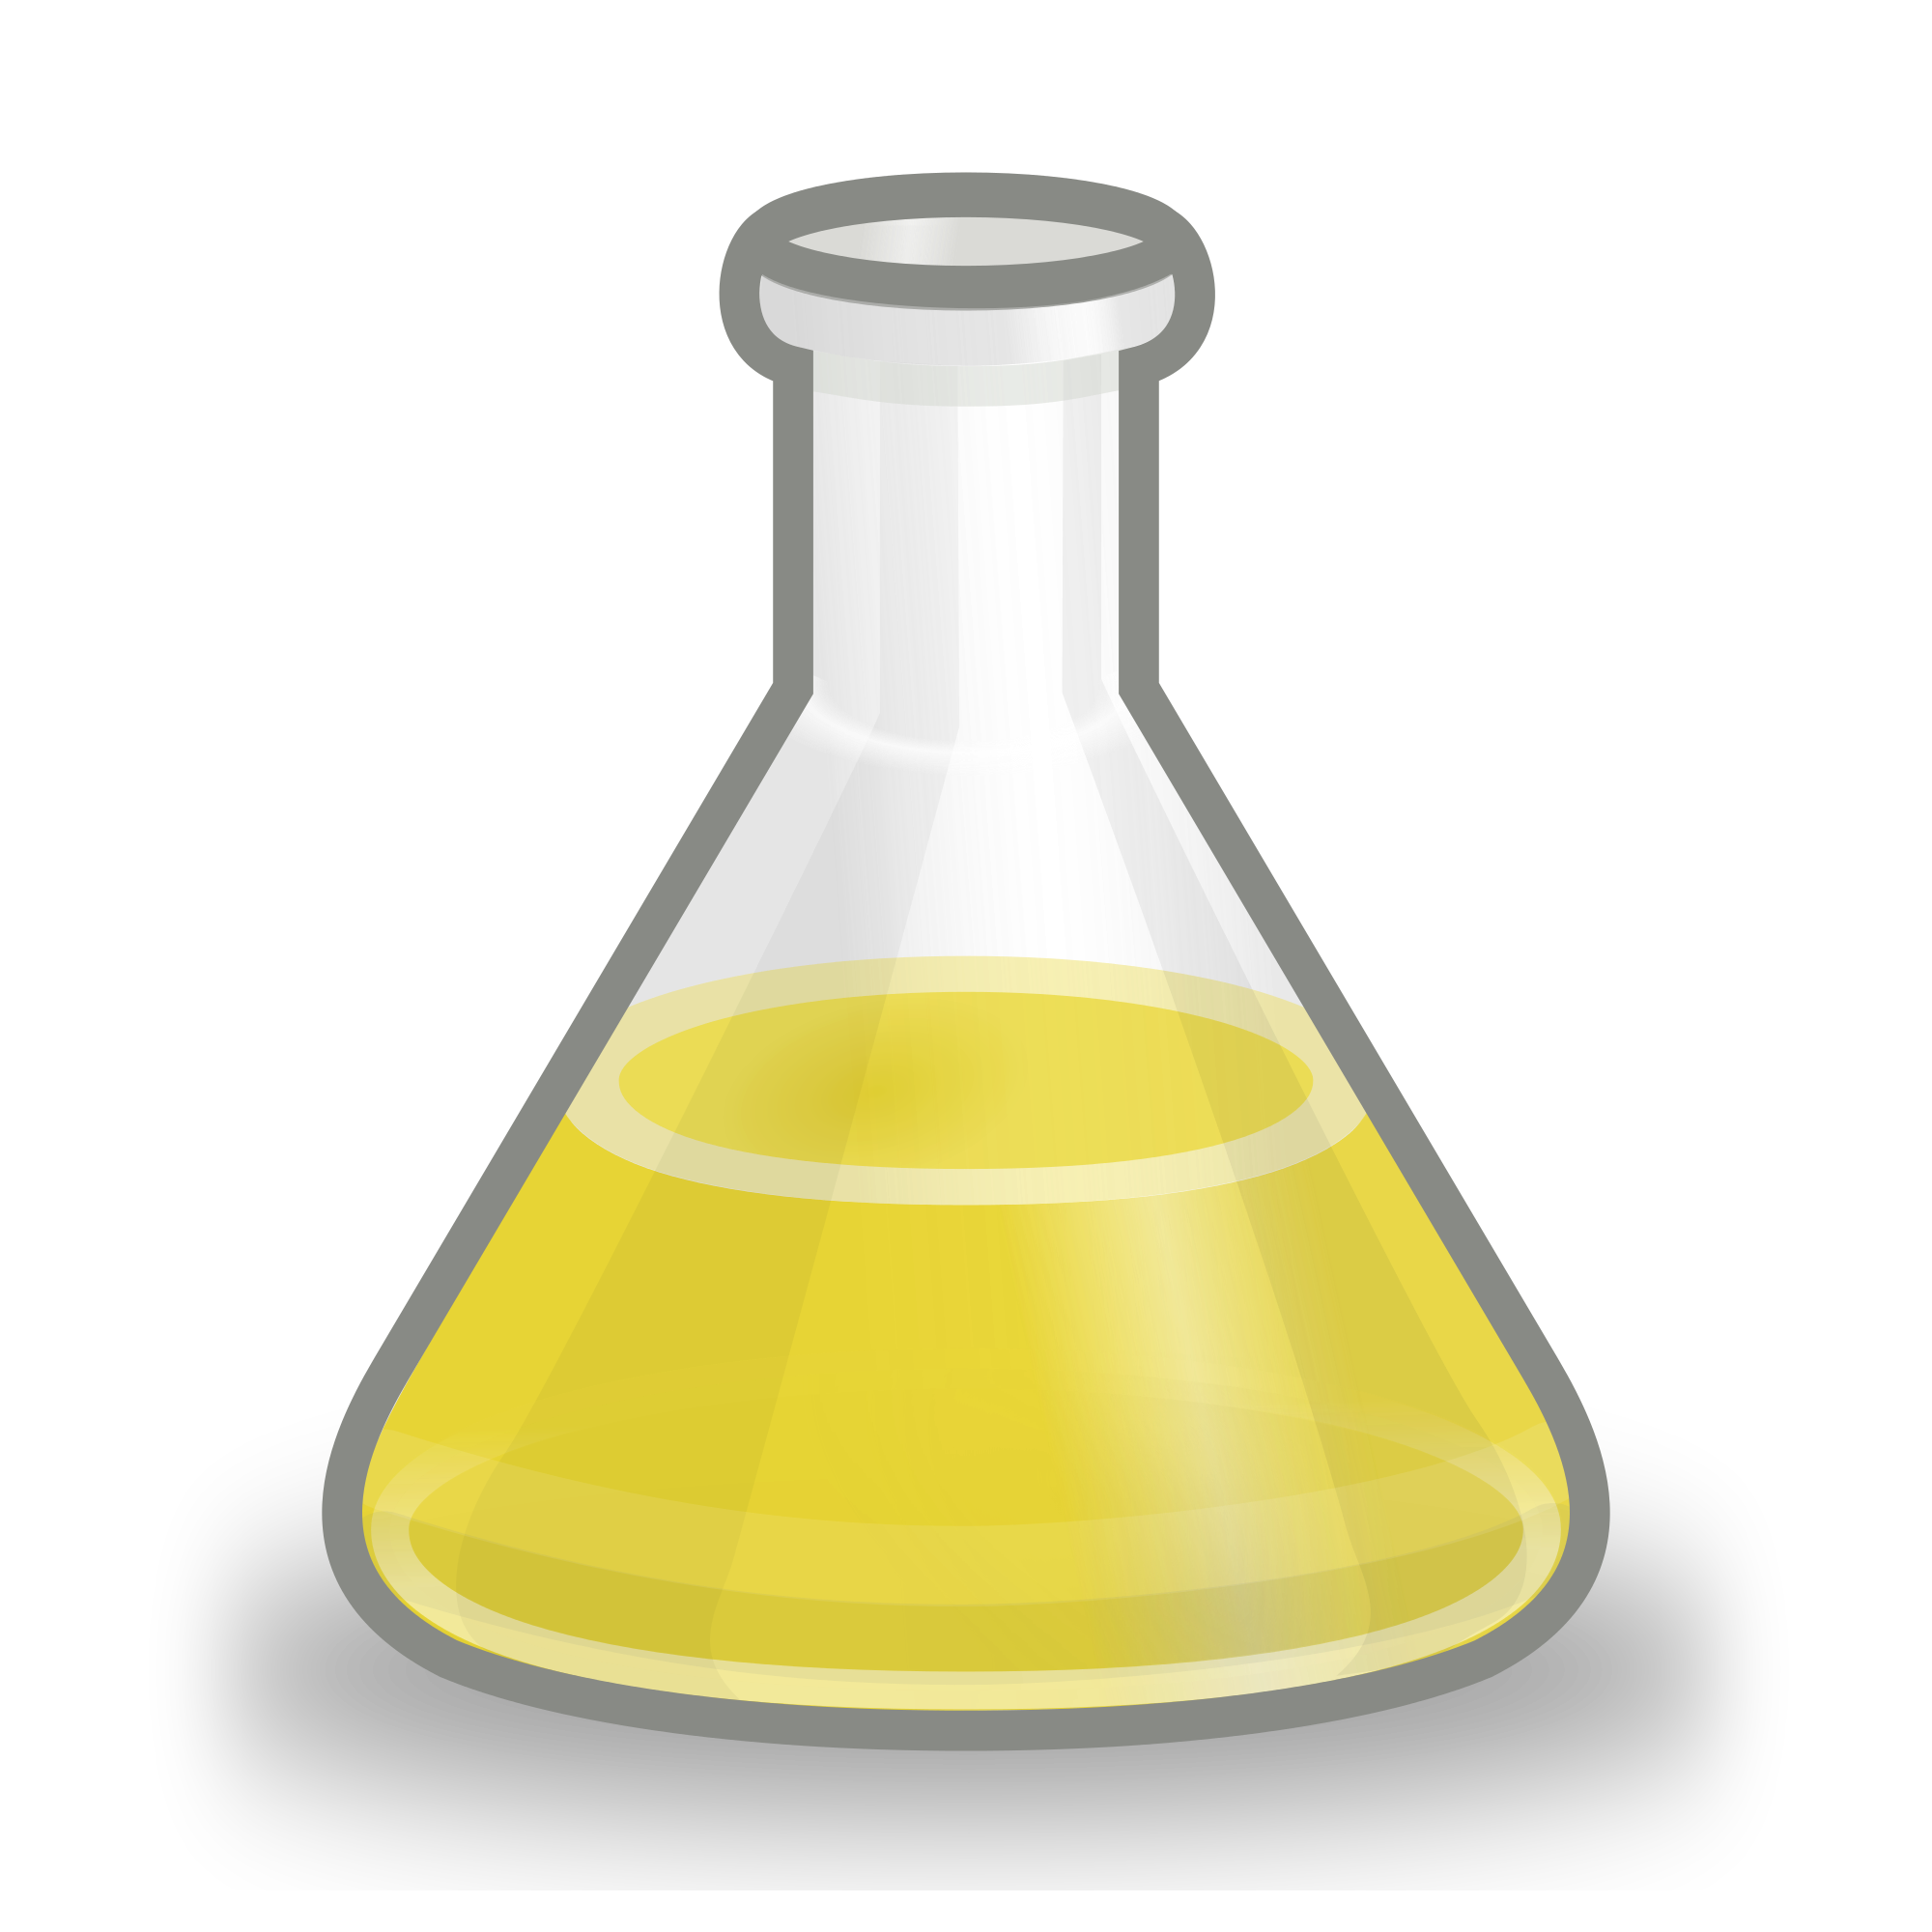 Beaker yellow png. File conical flask svg